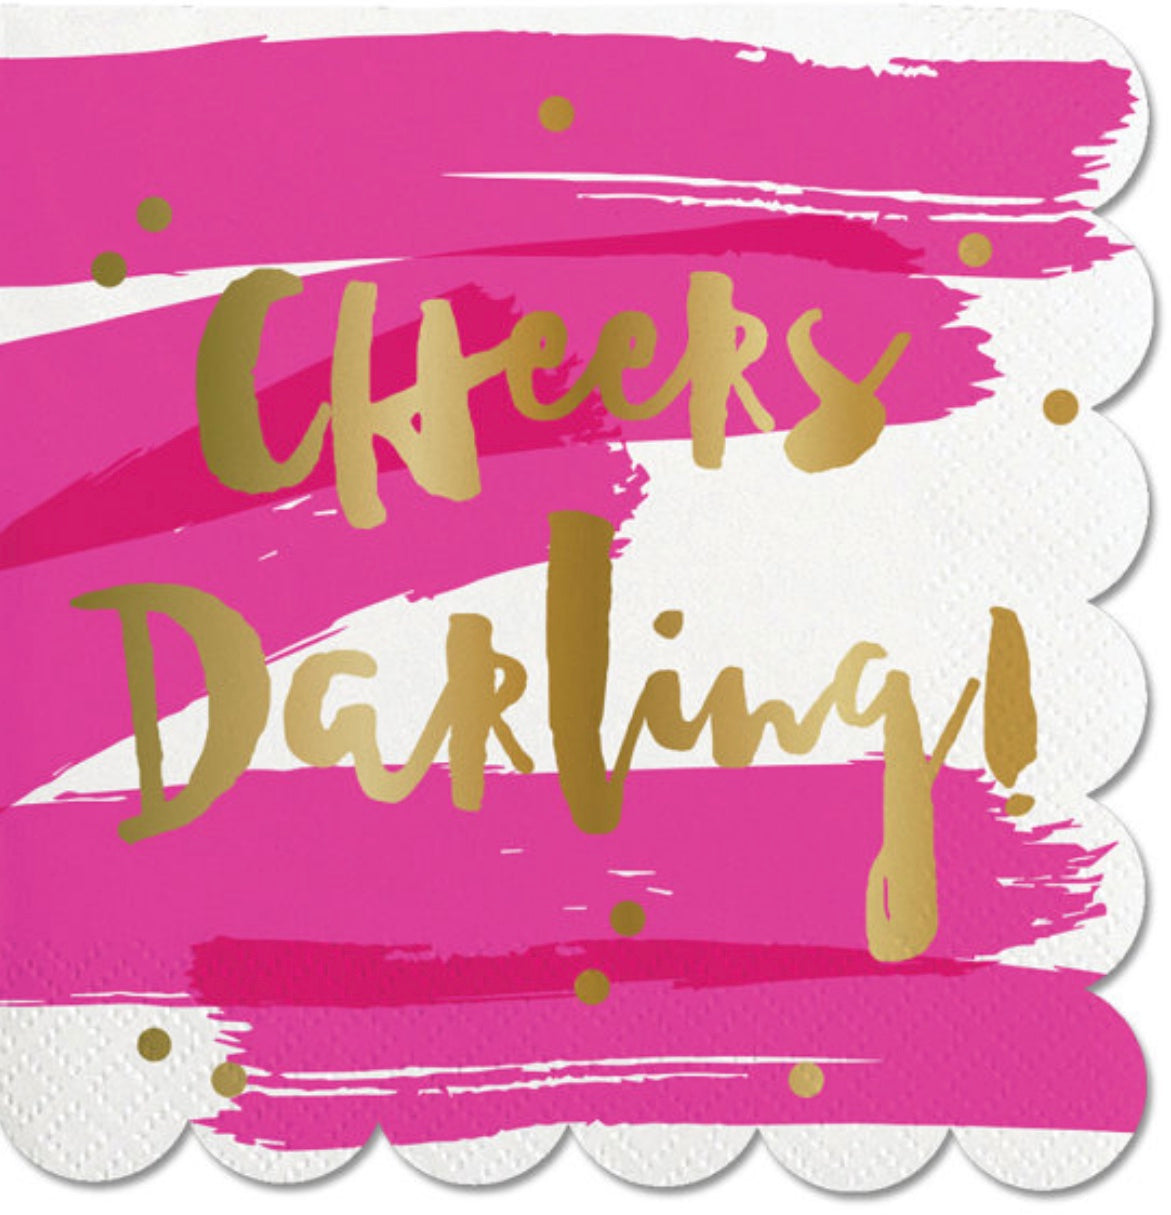 """Cheers Darling!"" pink and gold foil napkins. 20 pack"